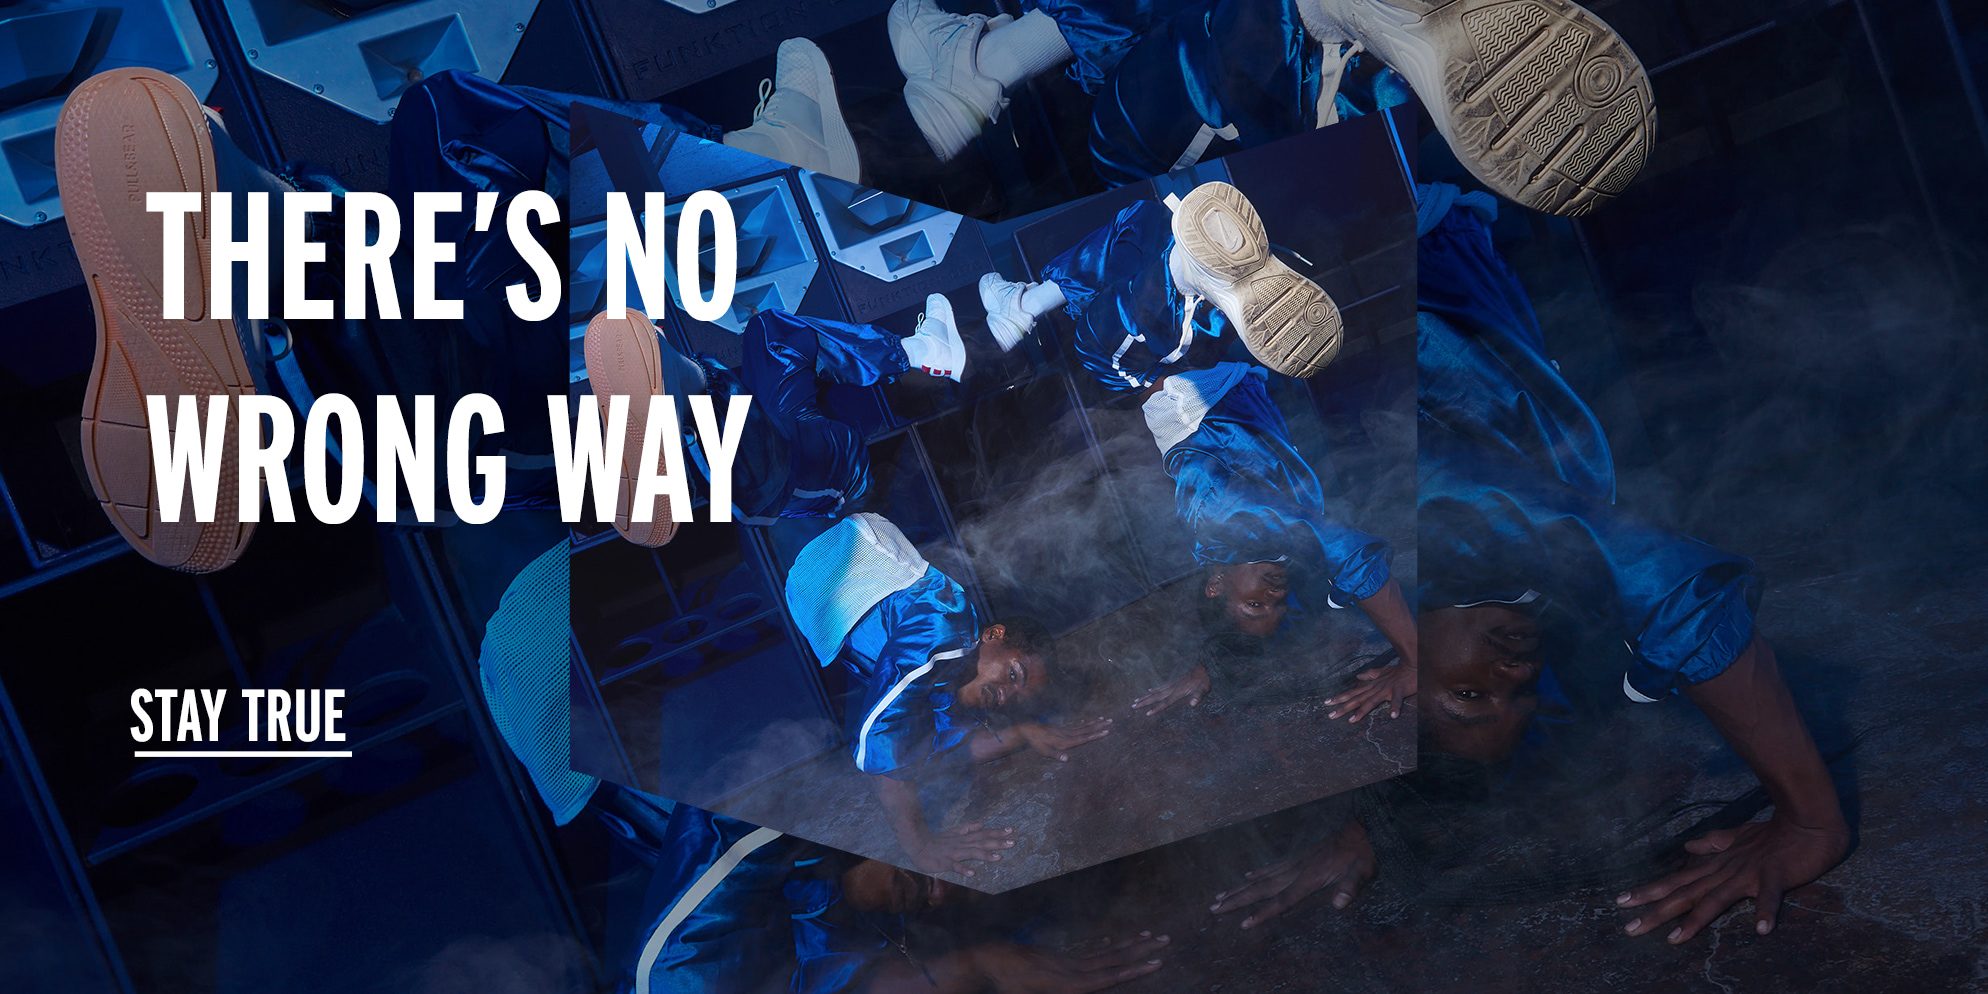 Ballantine's Stay True: There's No Wrong Way